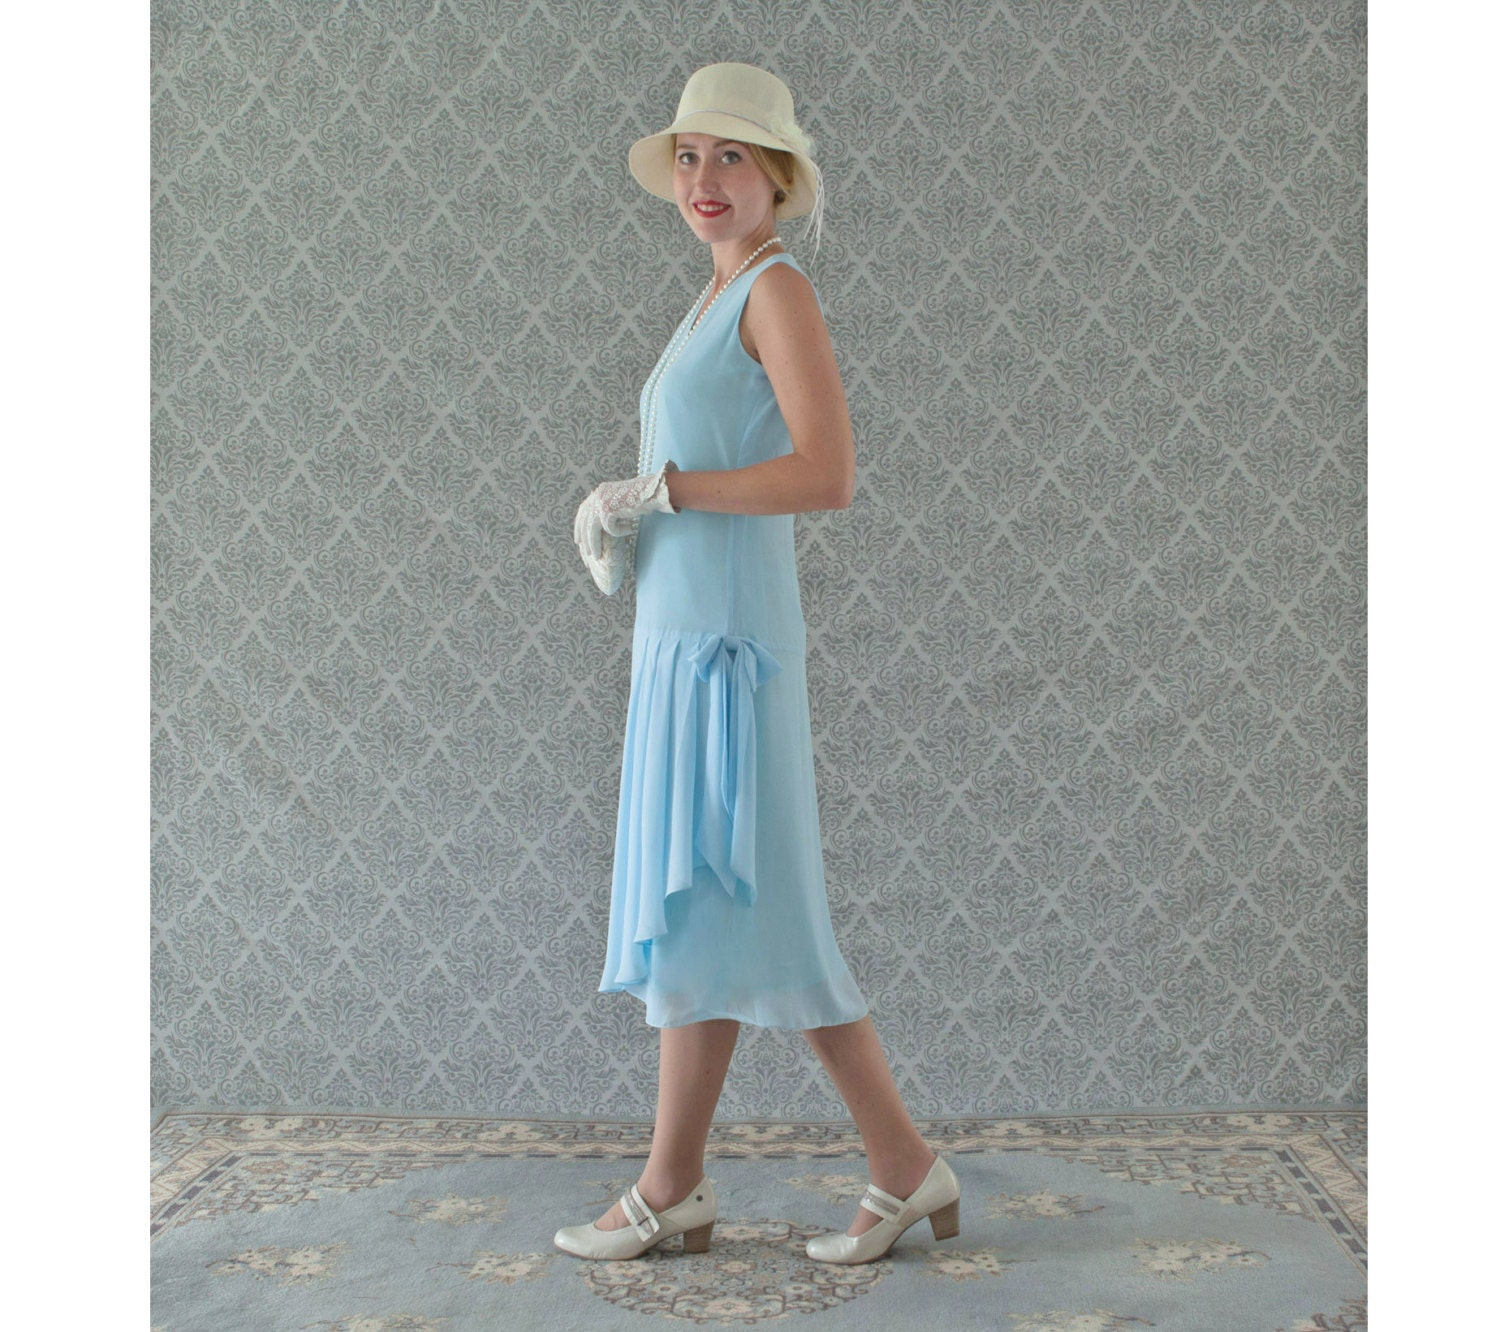 Light blue 1920s-inspired flapper dress with drape and bow